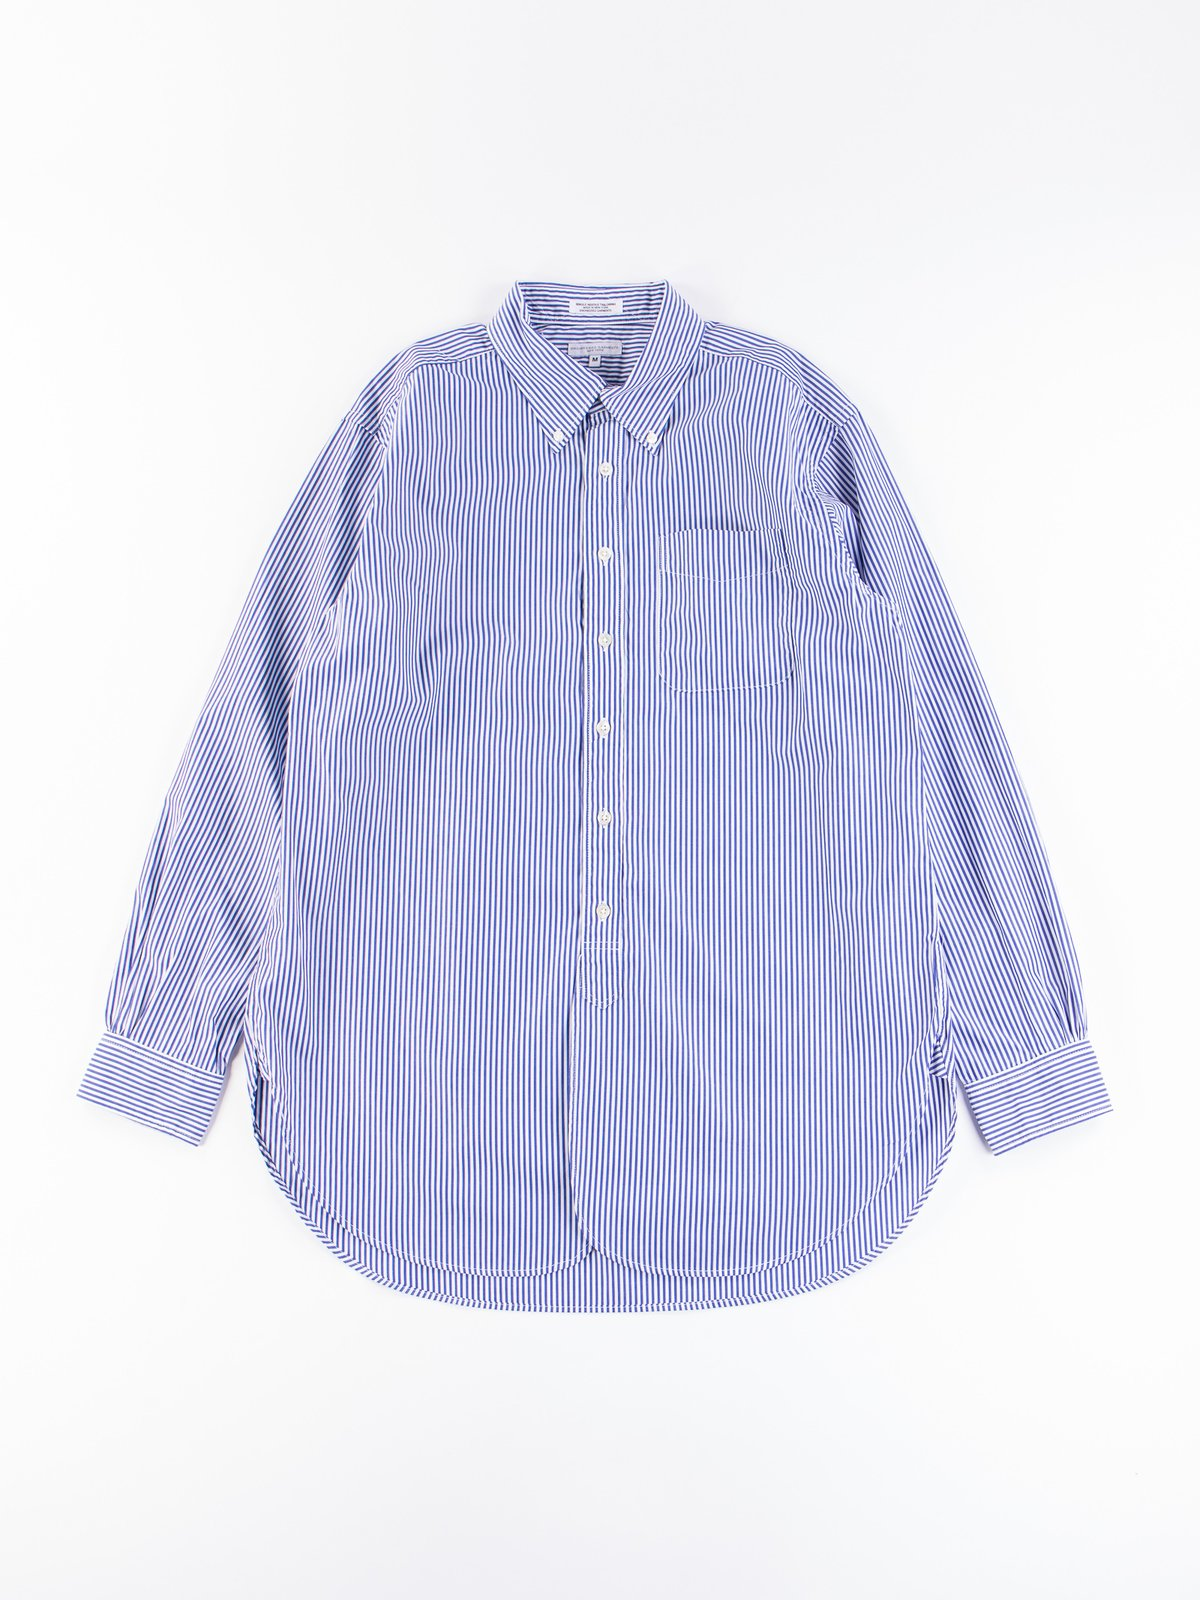 Blue/White Candy Stripe Broadcloth 19th Century BD Shirt - Image 1